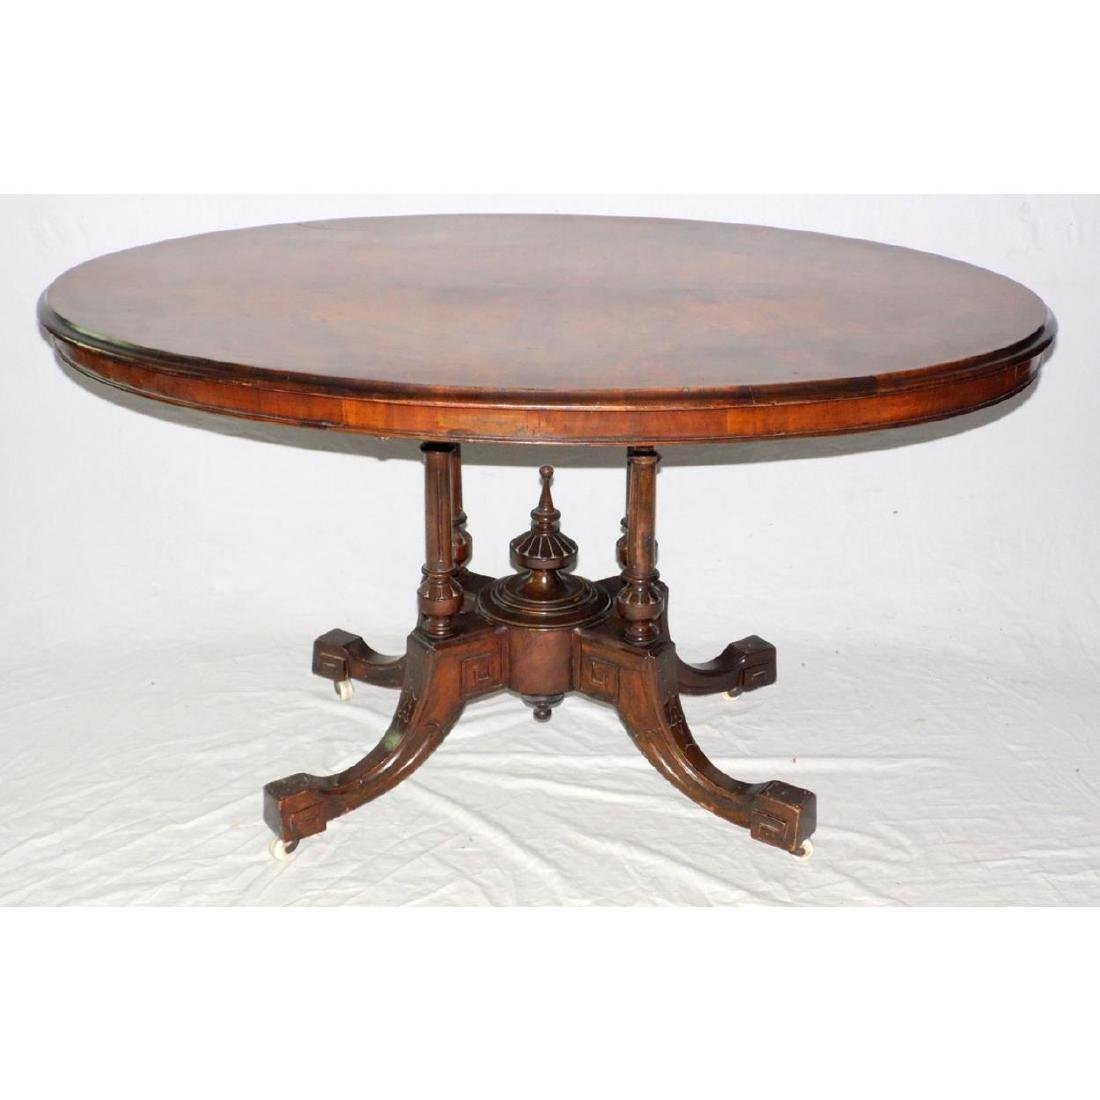 Victorian Burr Walnut Oval Breakfast Loo Table